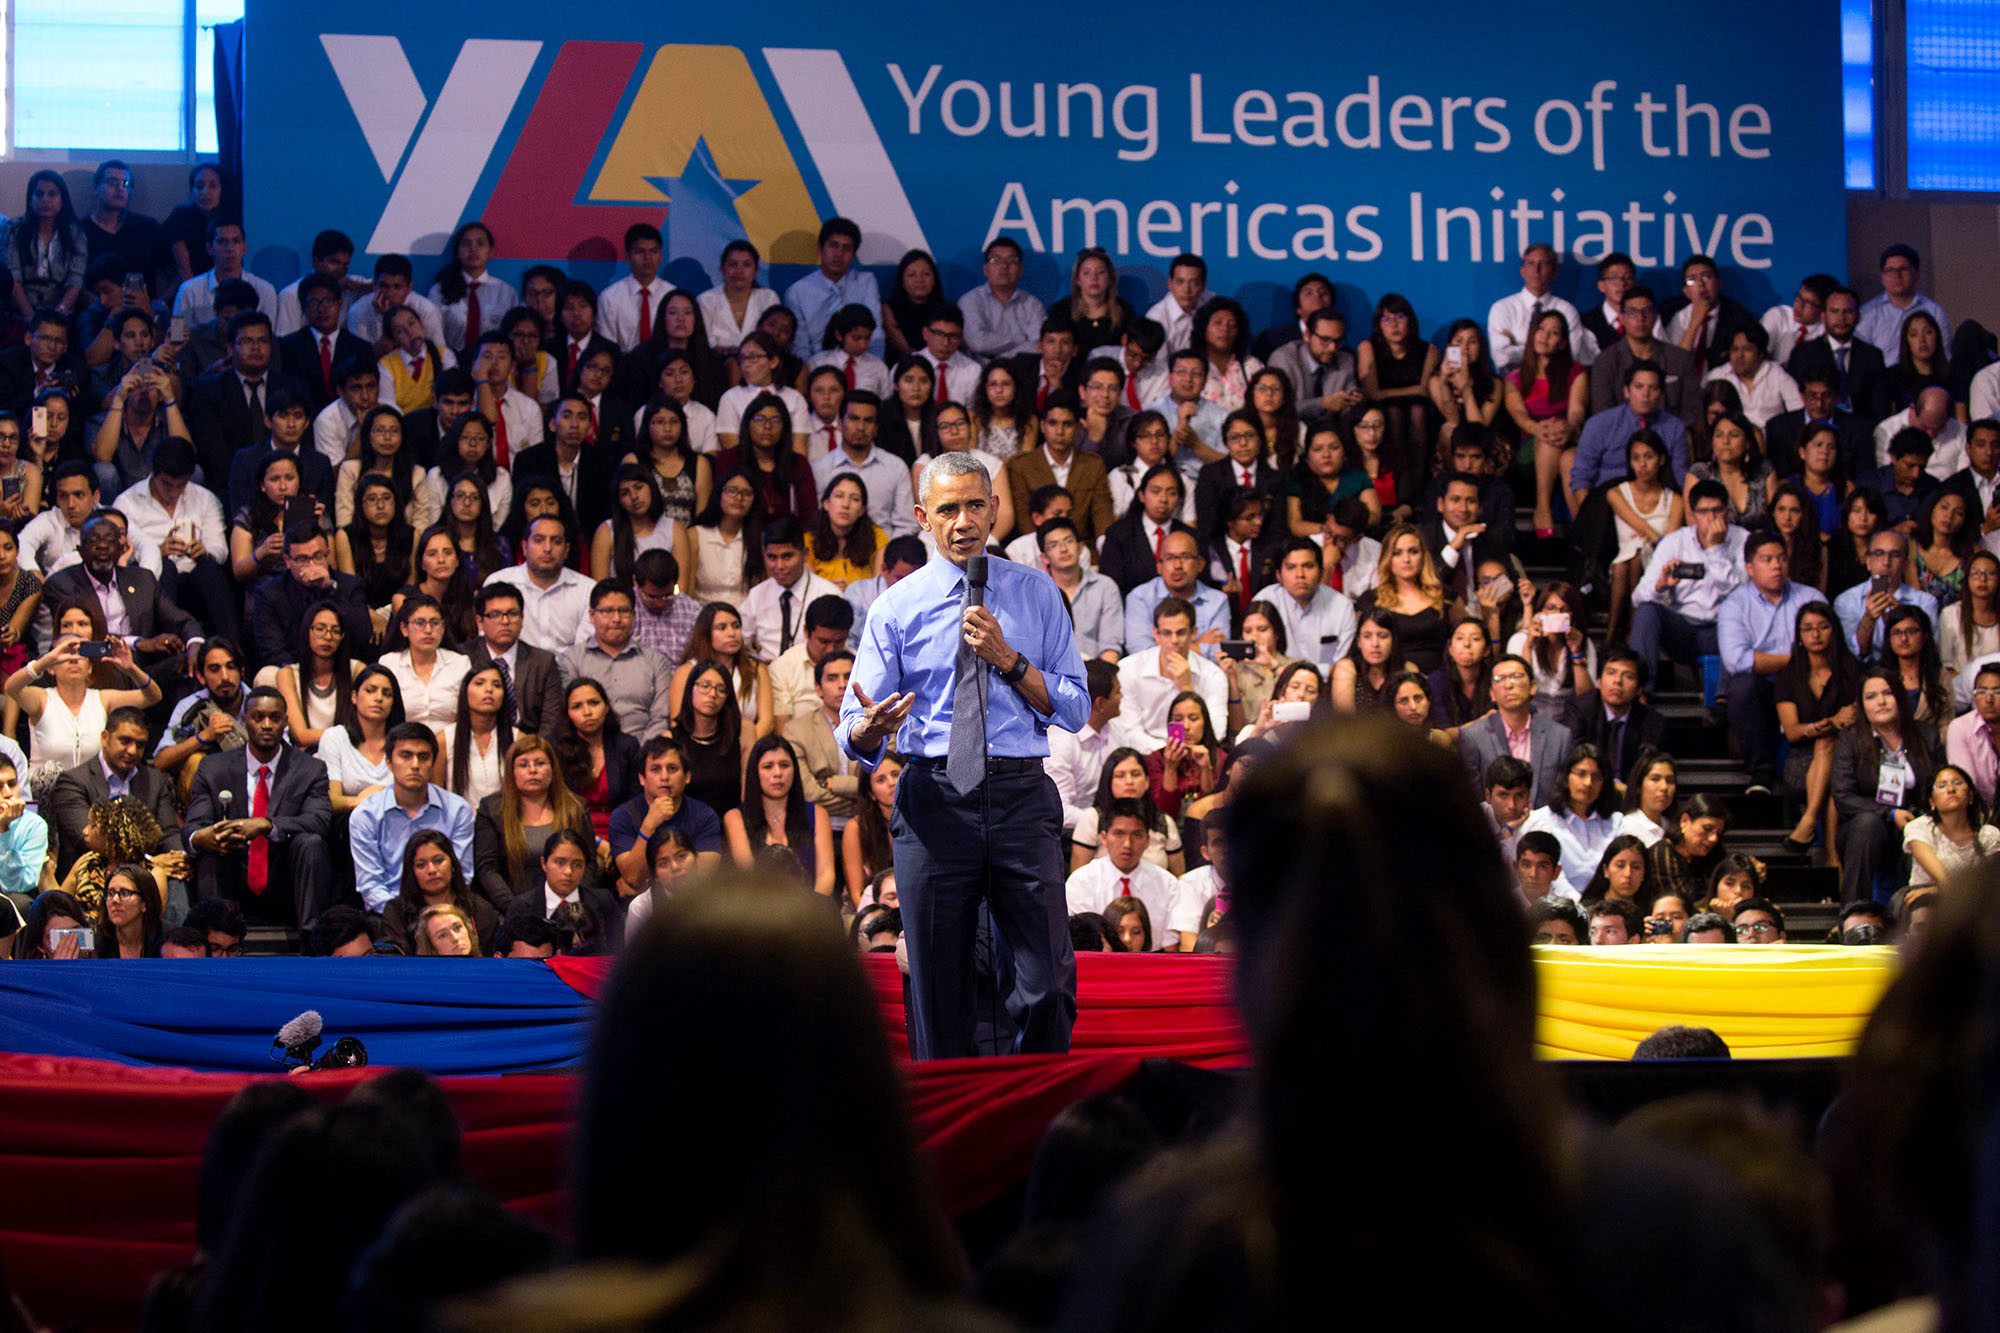 President Barack Obama participates in the Young Leaders of the Americas Initiative (YLAI) town hall at the Pontifical Catholic University of Peru in Lima, Peru, Nov. 19, 2016. (Official White House Photo by Chuck Kennedy)